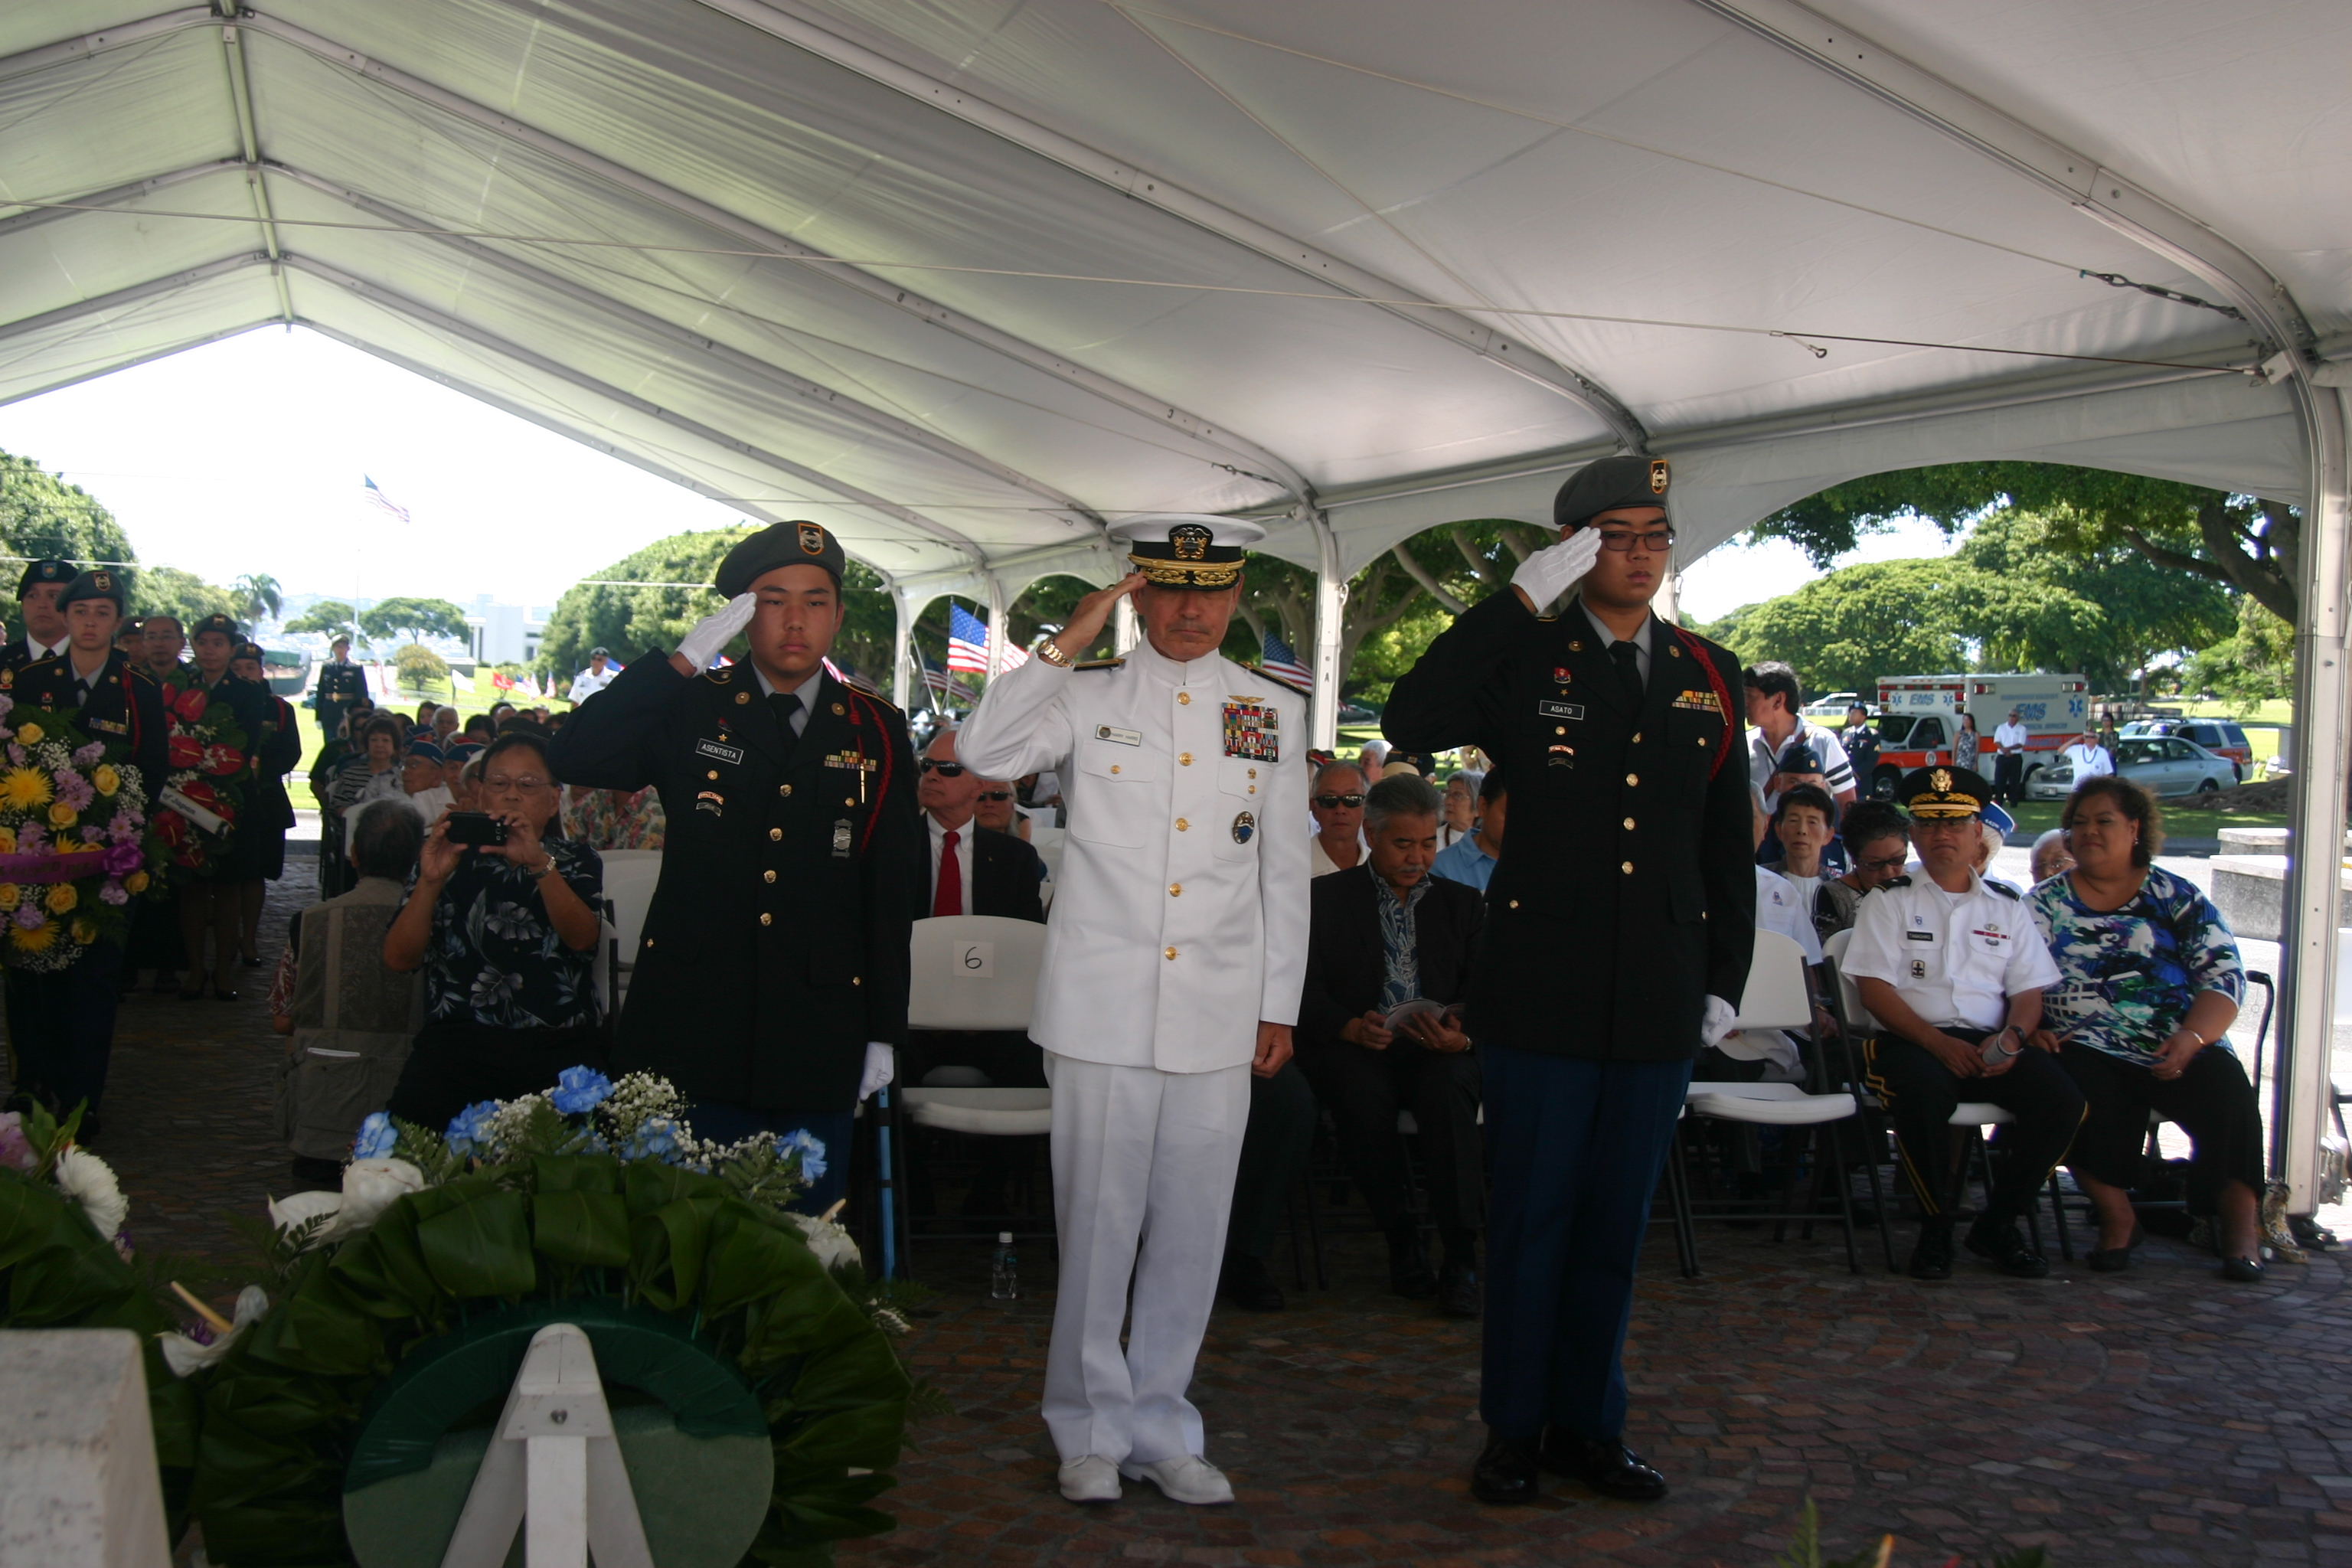 Photo of Adm. Harry B. Harris Jr., who commands the U.S. Pacific Command, salutes the World War II AJA soldiers after placing his wreath at the memorial.